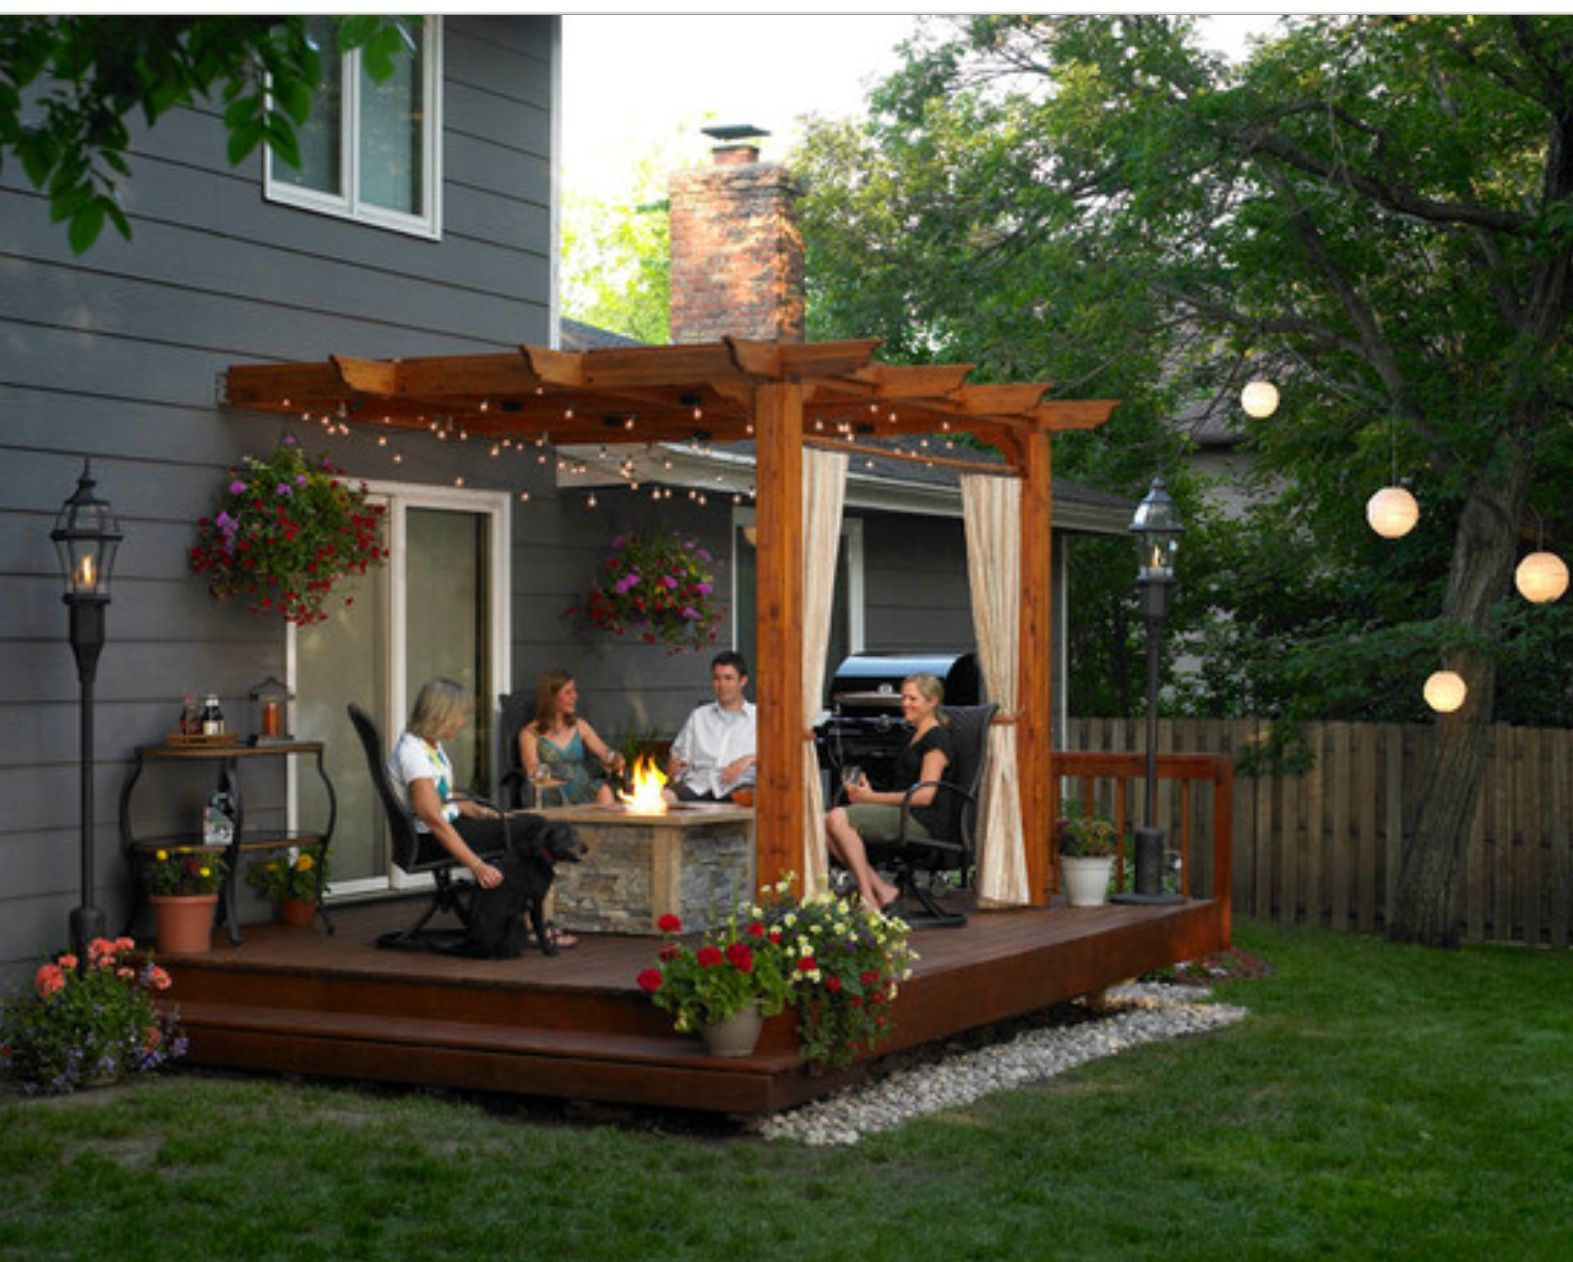 Mesmerizing Decking Pergola Ideas Outdoor Living Outdoor Living Abc Pinterest Outdoor Garden Small Patios outdoor Pergola Ideas For Small Backyards